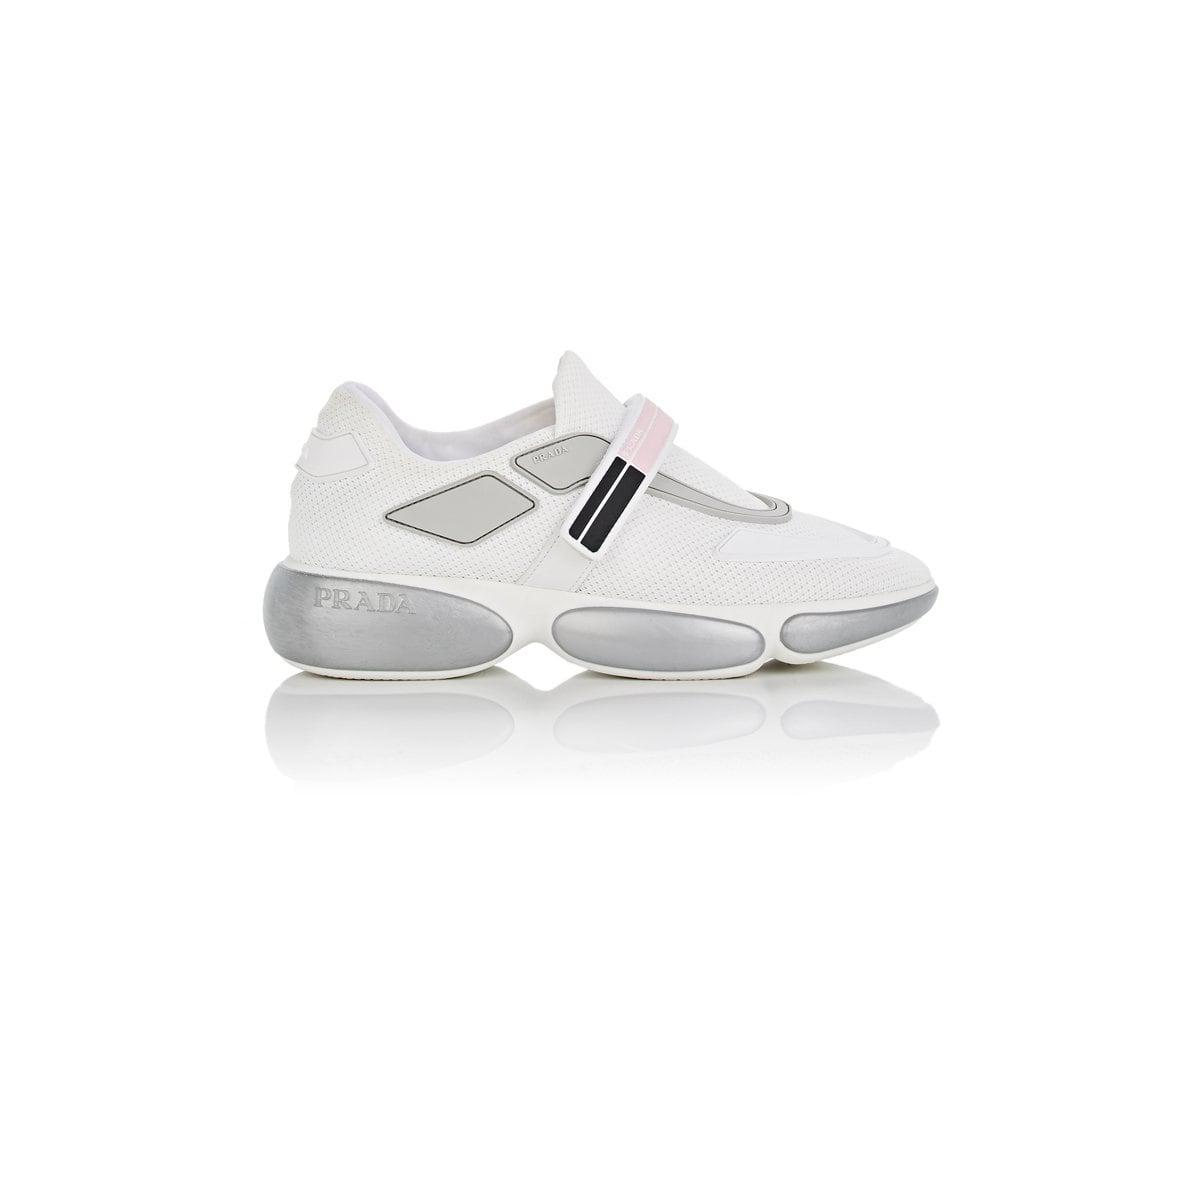 Buy Cheap Best Store To Get Buy Cheap In China Sneakers - Cloudbust Sneakers White/Silver - white - Sneakers for ladies Prada Fashion Style Sale Recommend Buy Cheap Top Quality oaXjRUZ